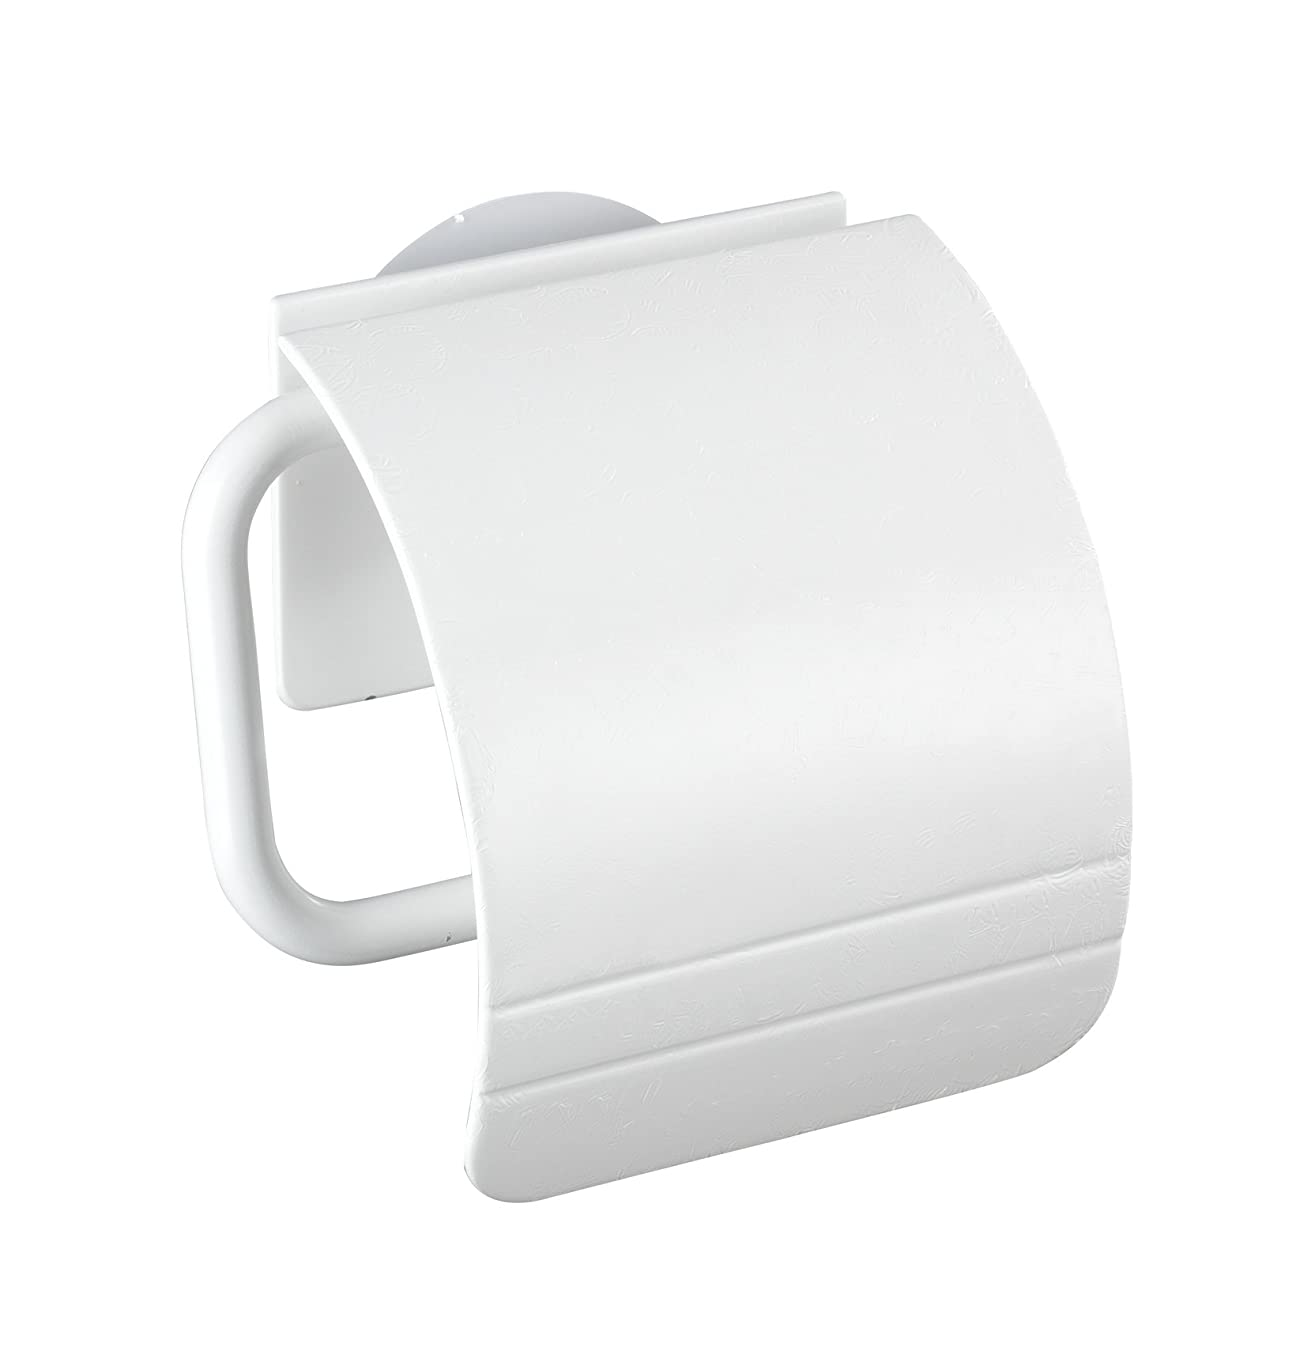 WENKO 22267100 Static-Loc Toilet Paper Holder with Cover Osimo, 5.9 x 5.5 x 2.0 inch, White